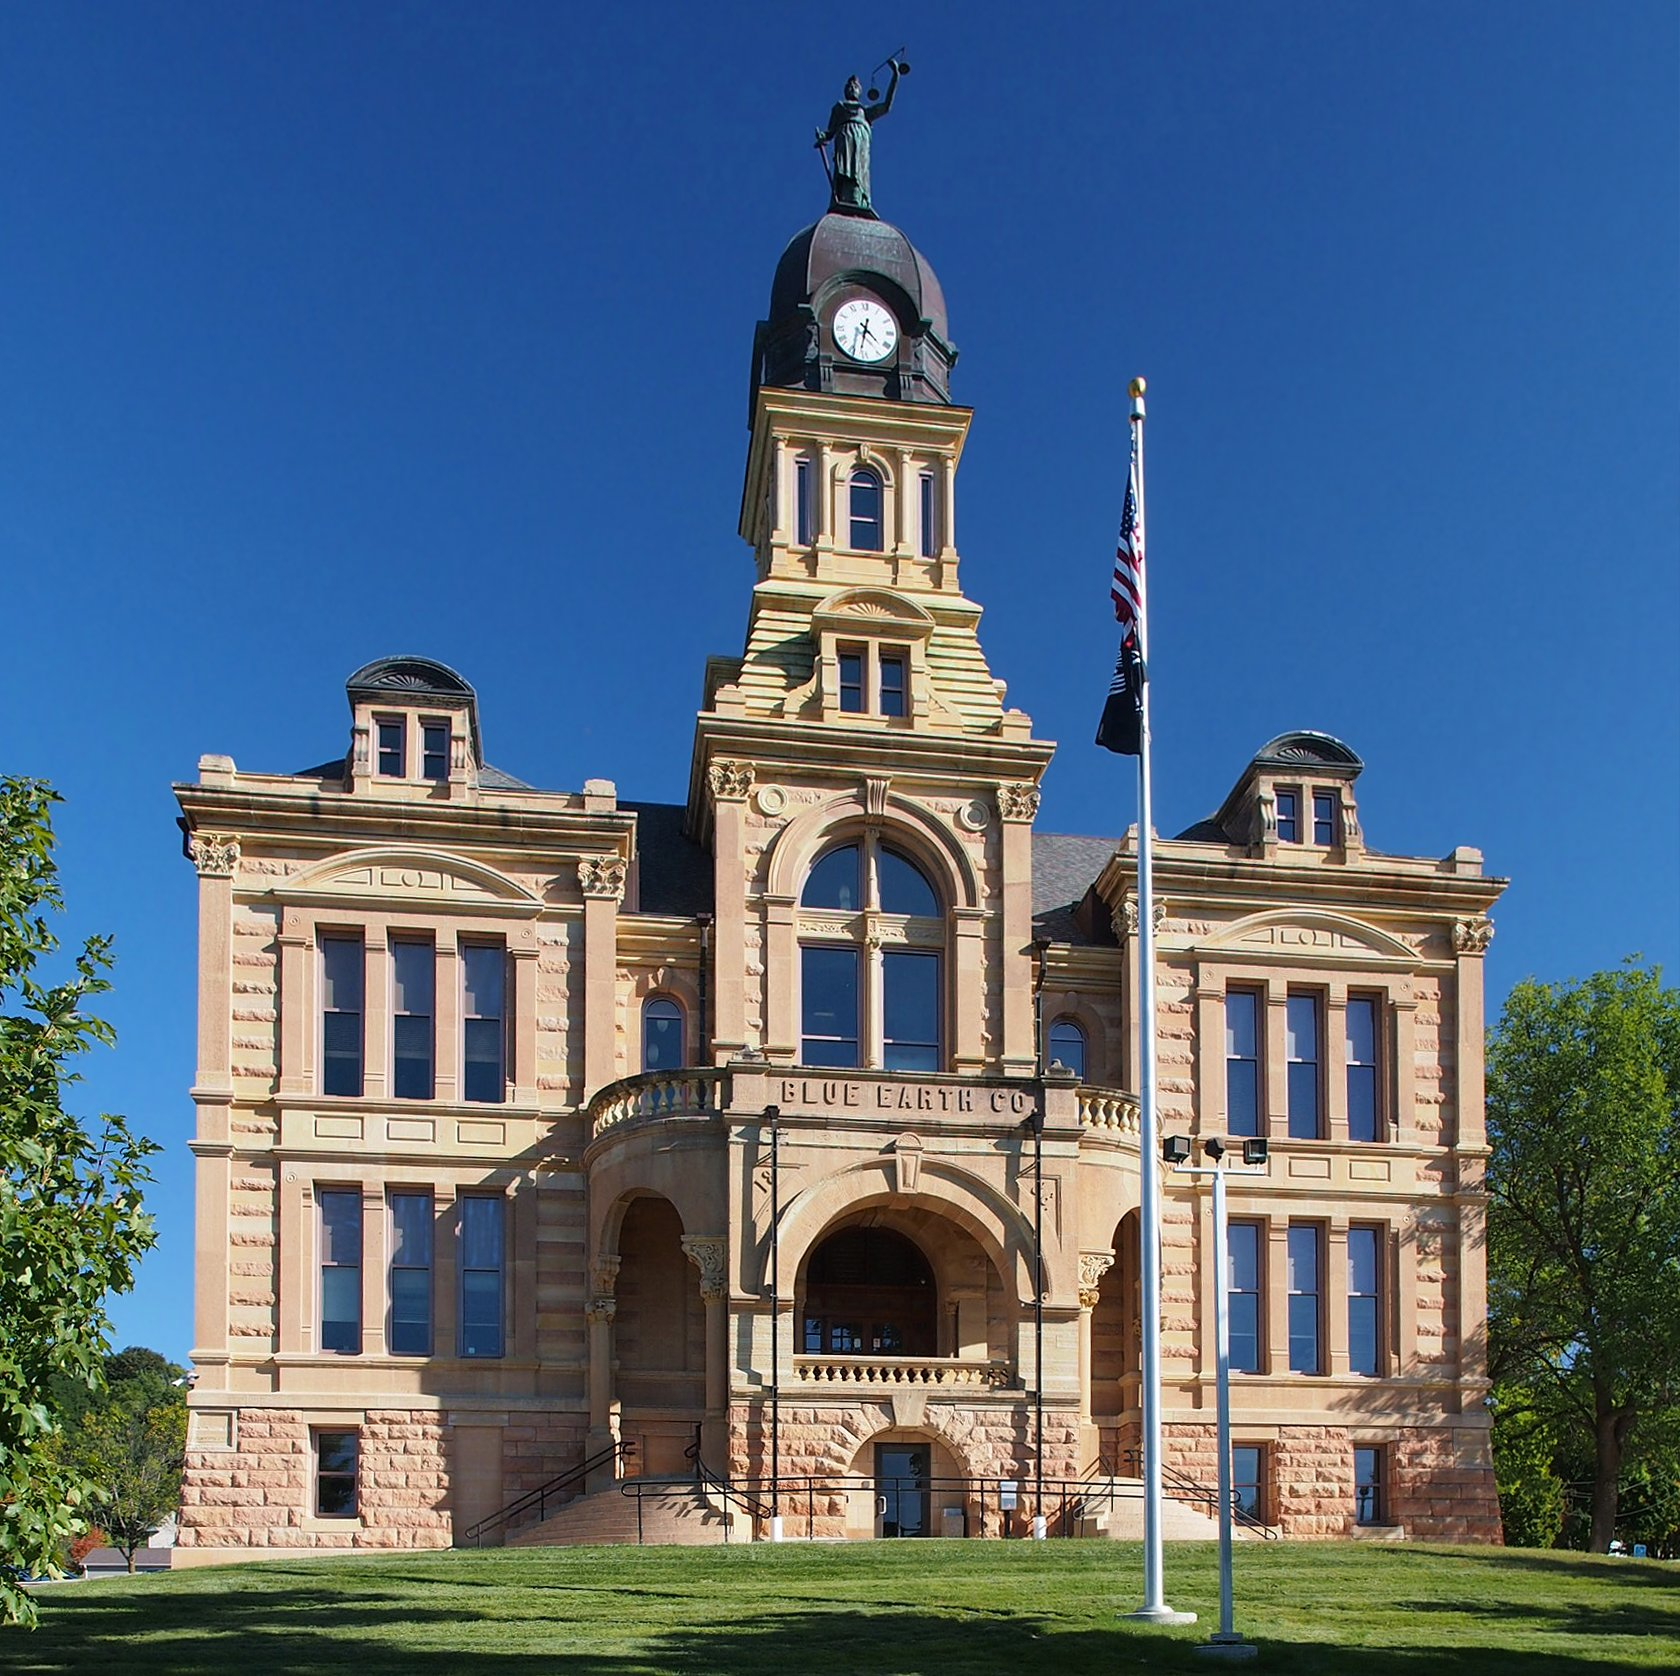 Blue Earth County Courthouse - Wikipedia